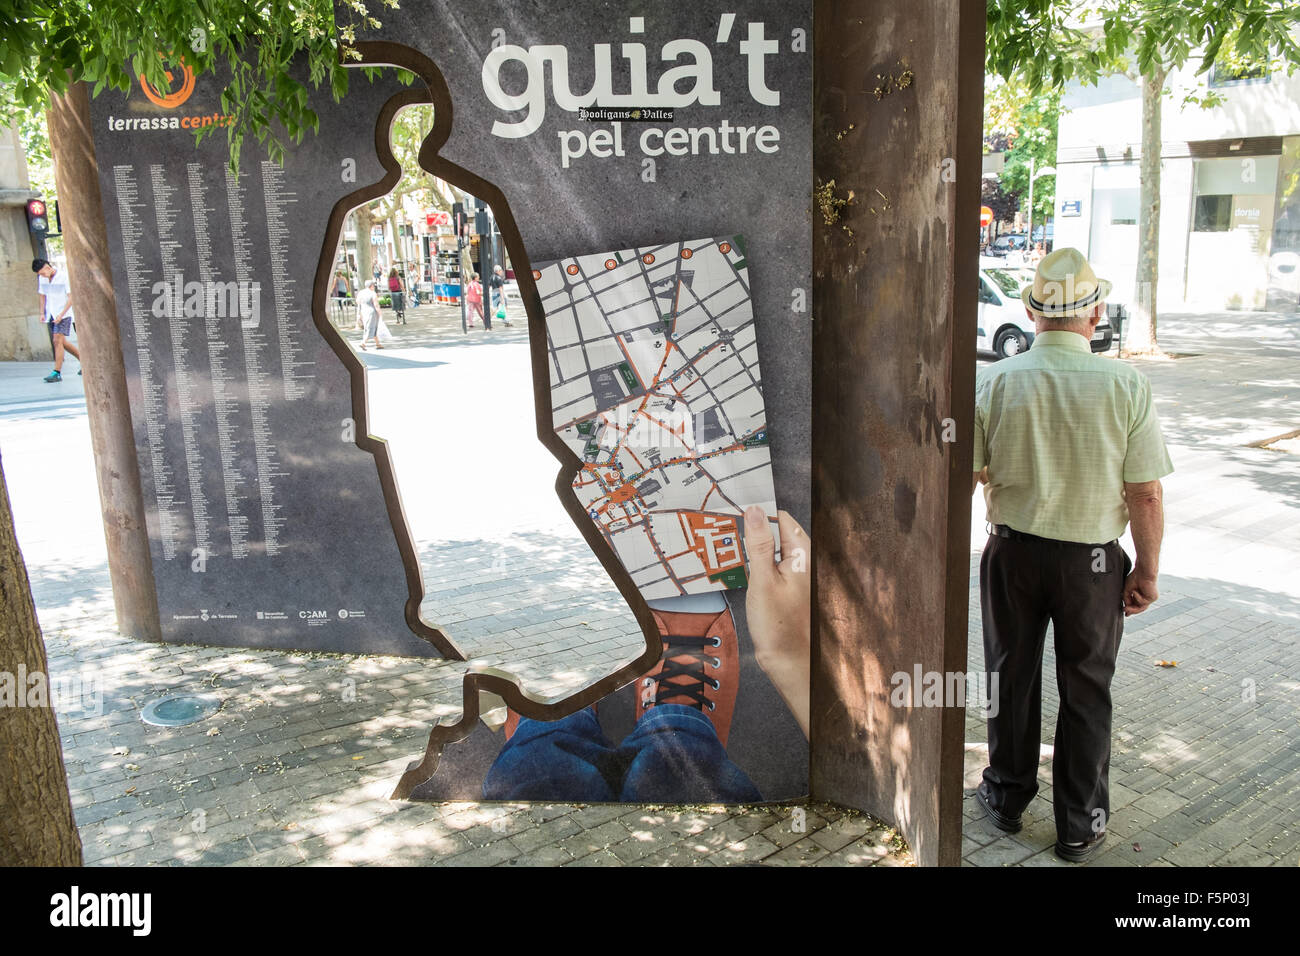 Map Of Spain Near Barcelona.Art Installation Noticeboard And Map Of Terrassa Suburb Town Near